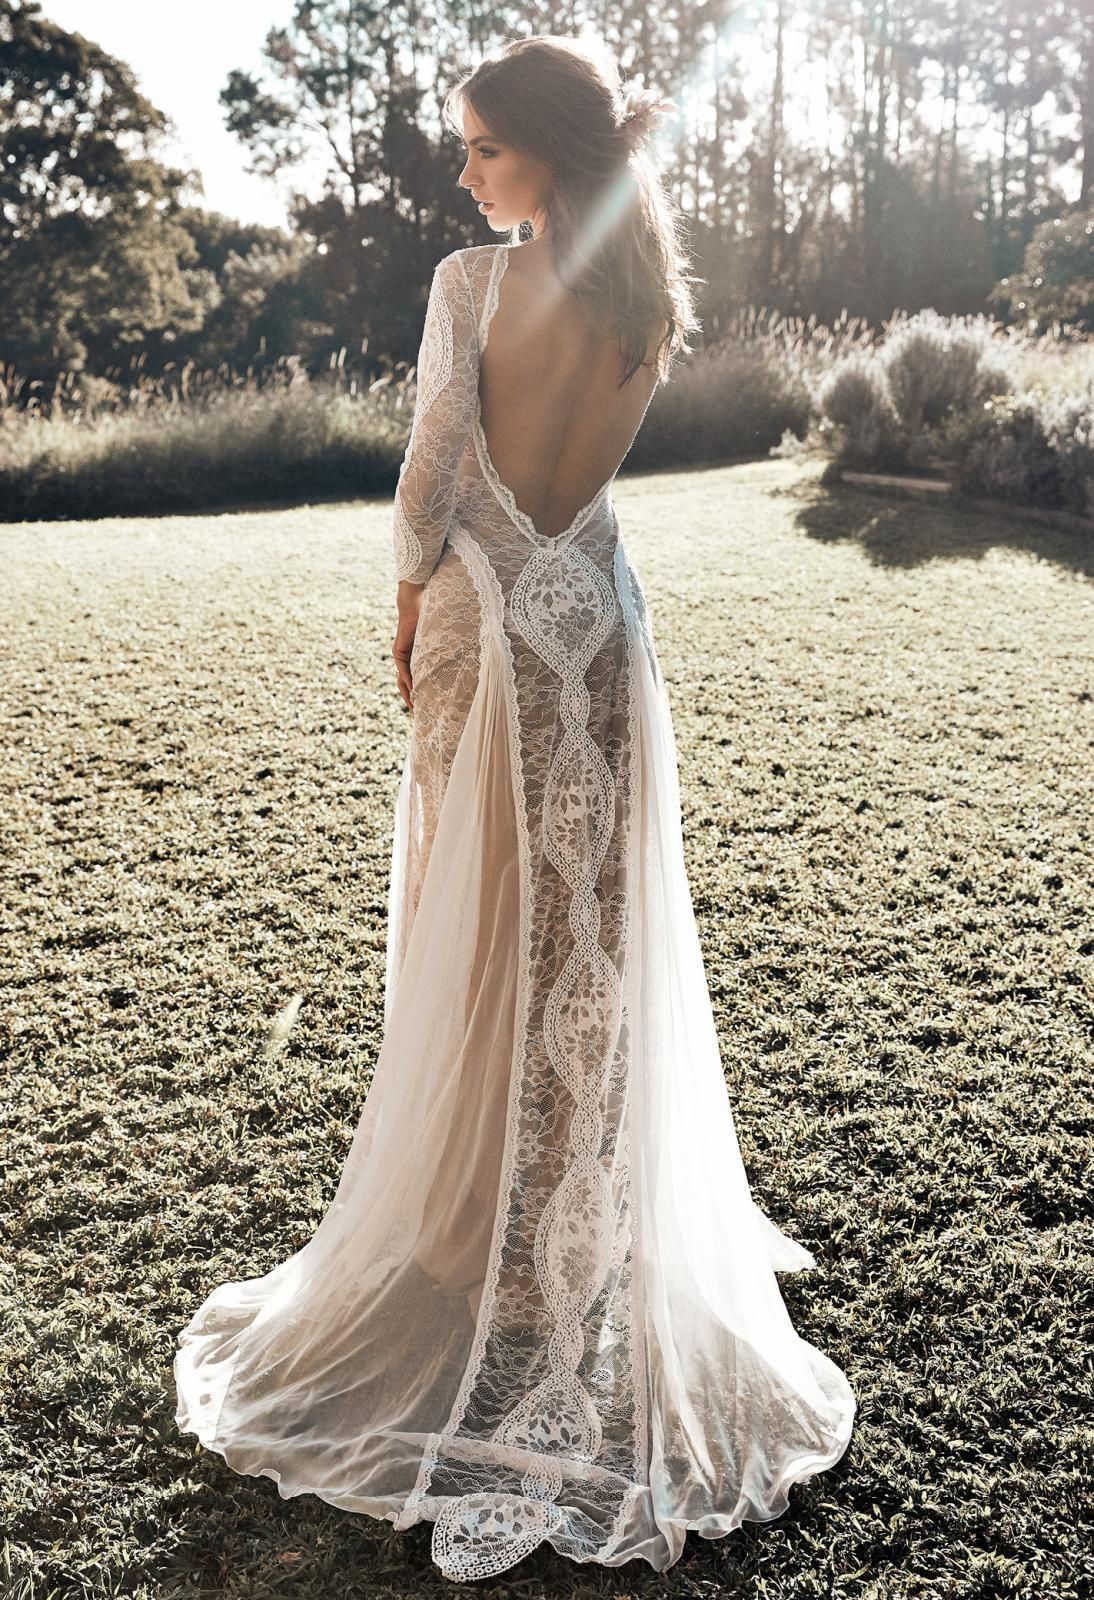 With A Unique Combination Of French And Japanese Lace Paired With A Flattering Fit Long Sleeve Wedding Dress Boho Beach Wedding Dress Boho Beach Wedding Dress